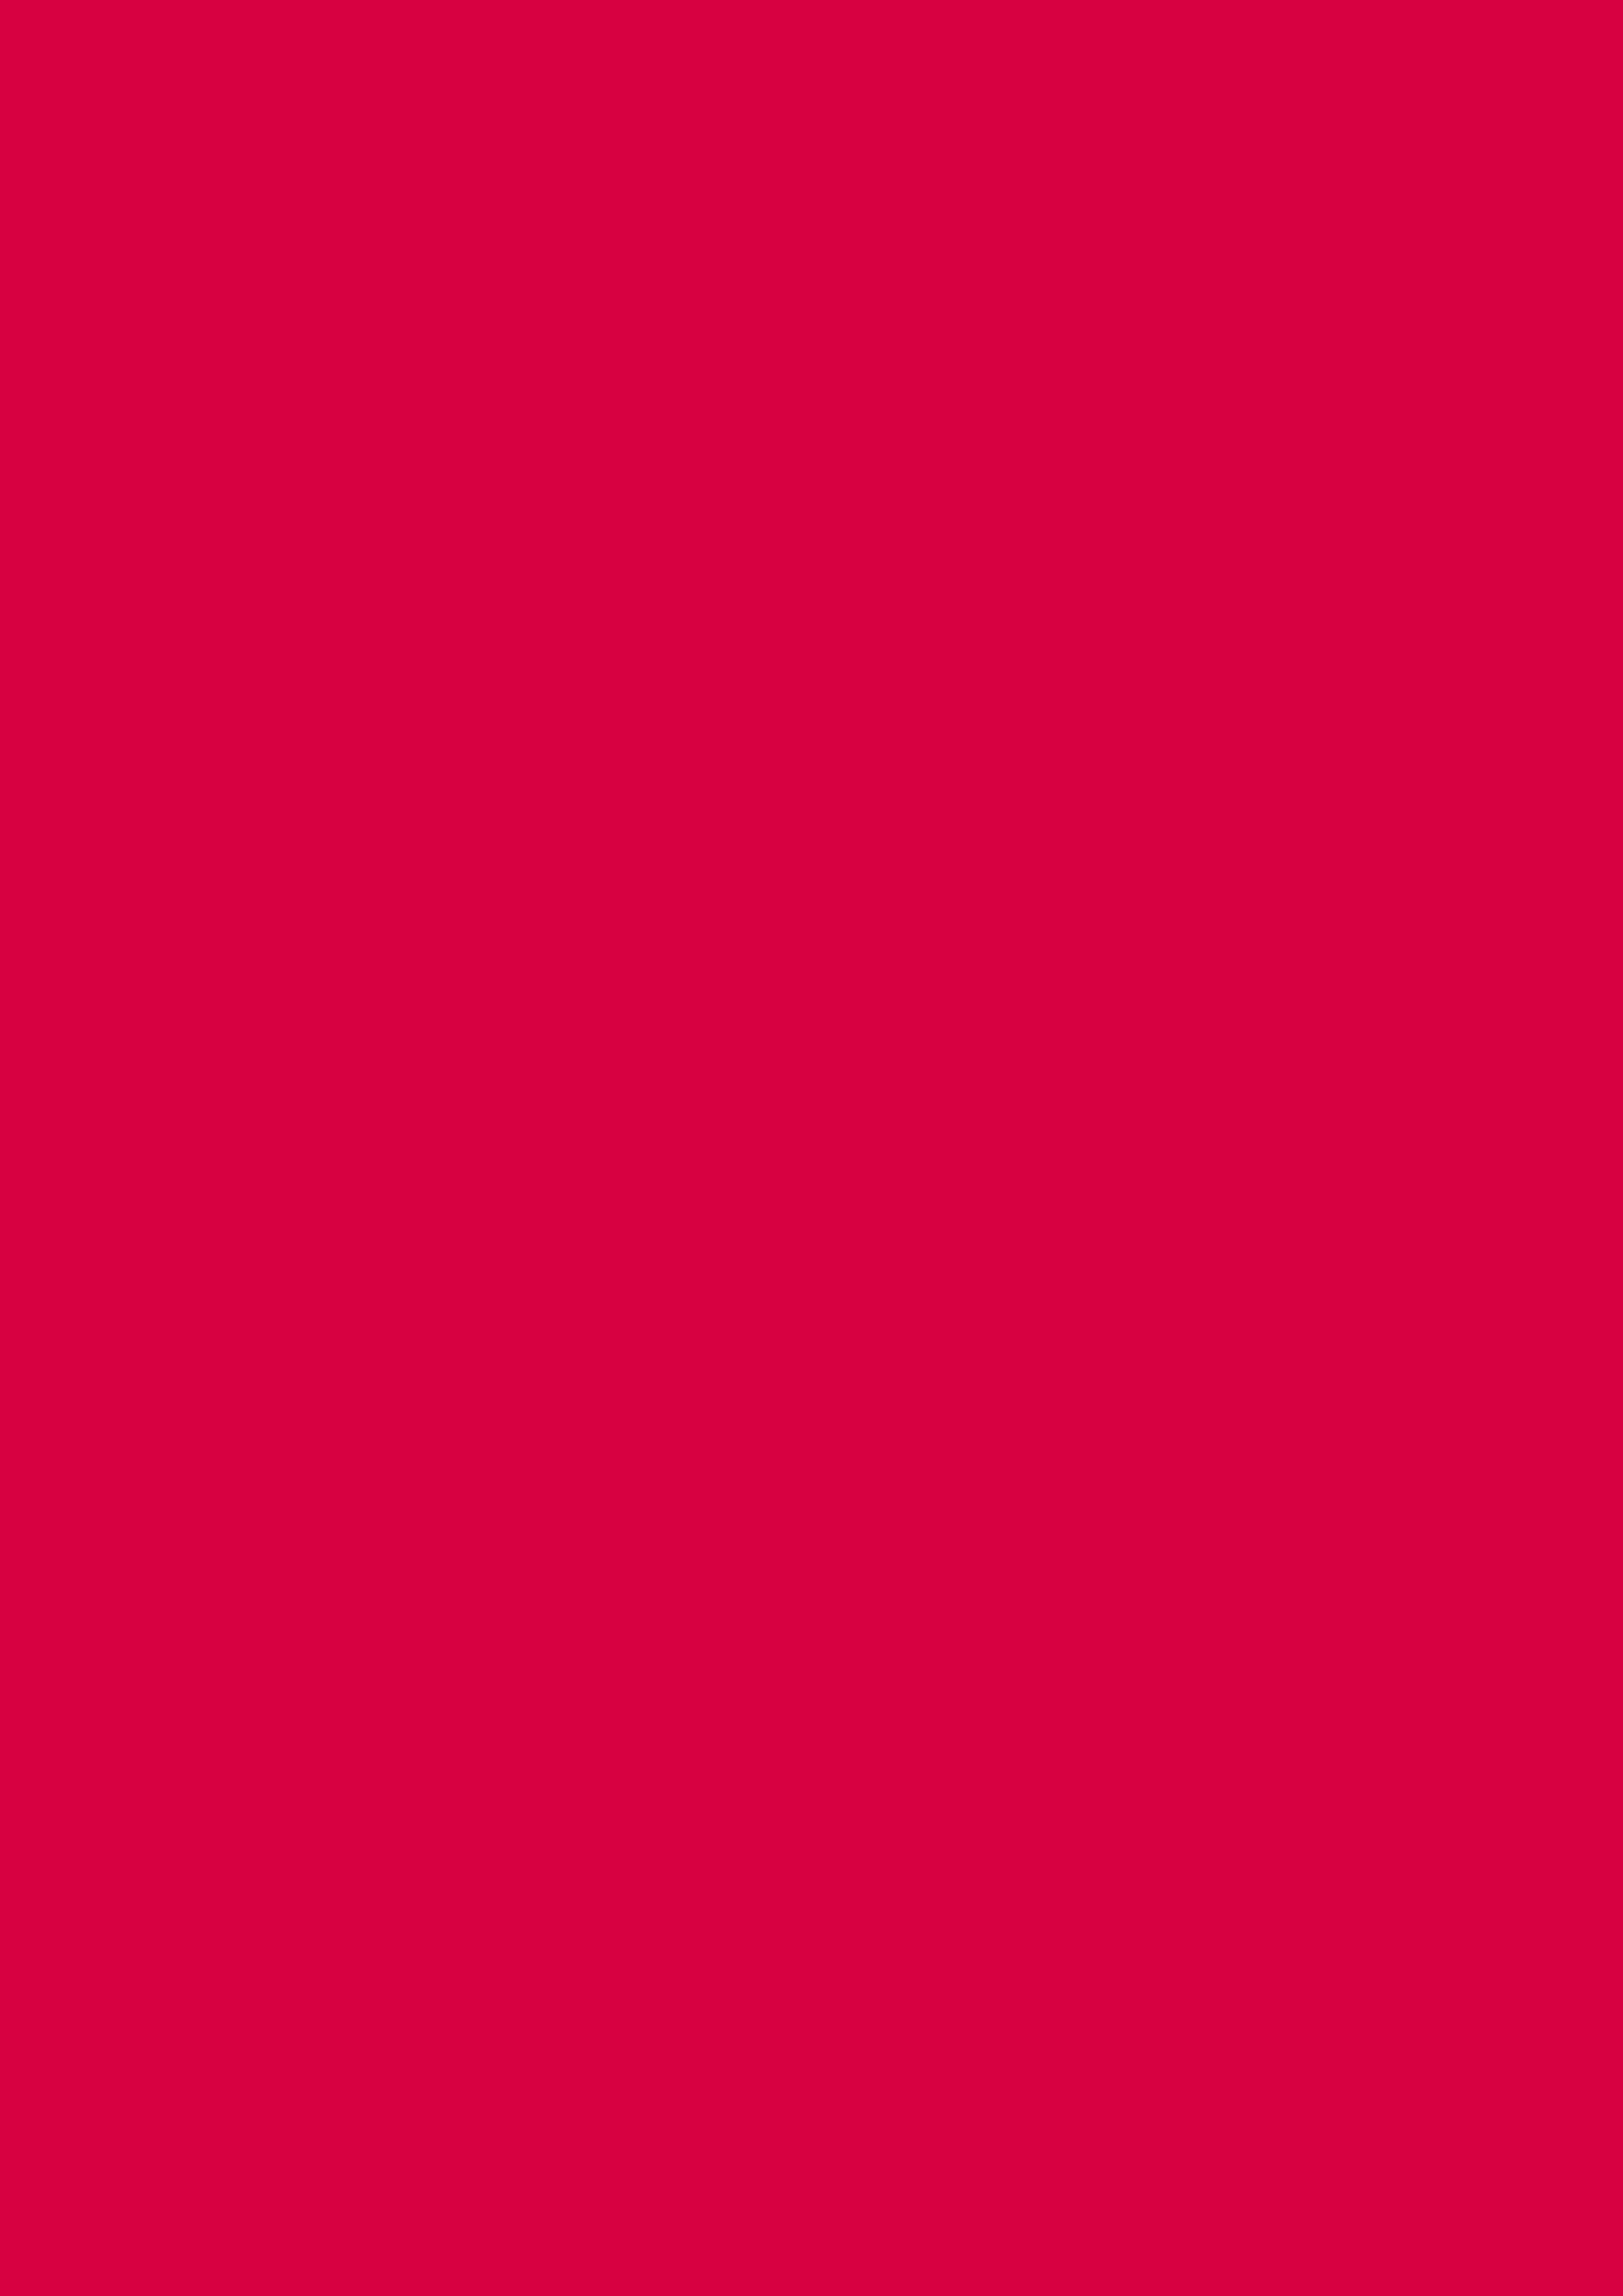 2480x3508 Rich Carmine Solid Color Background